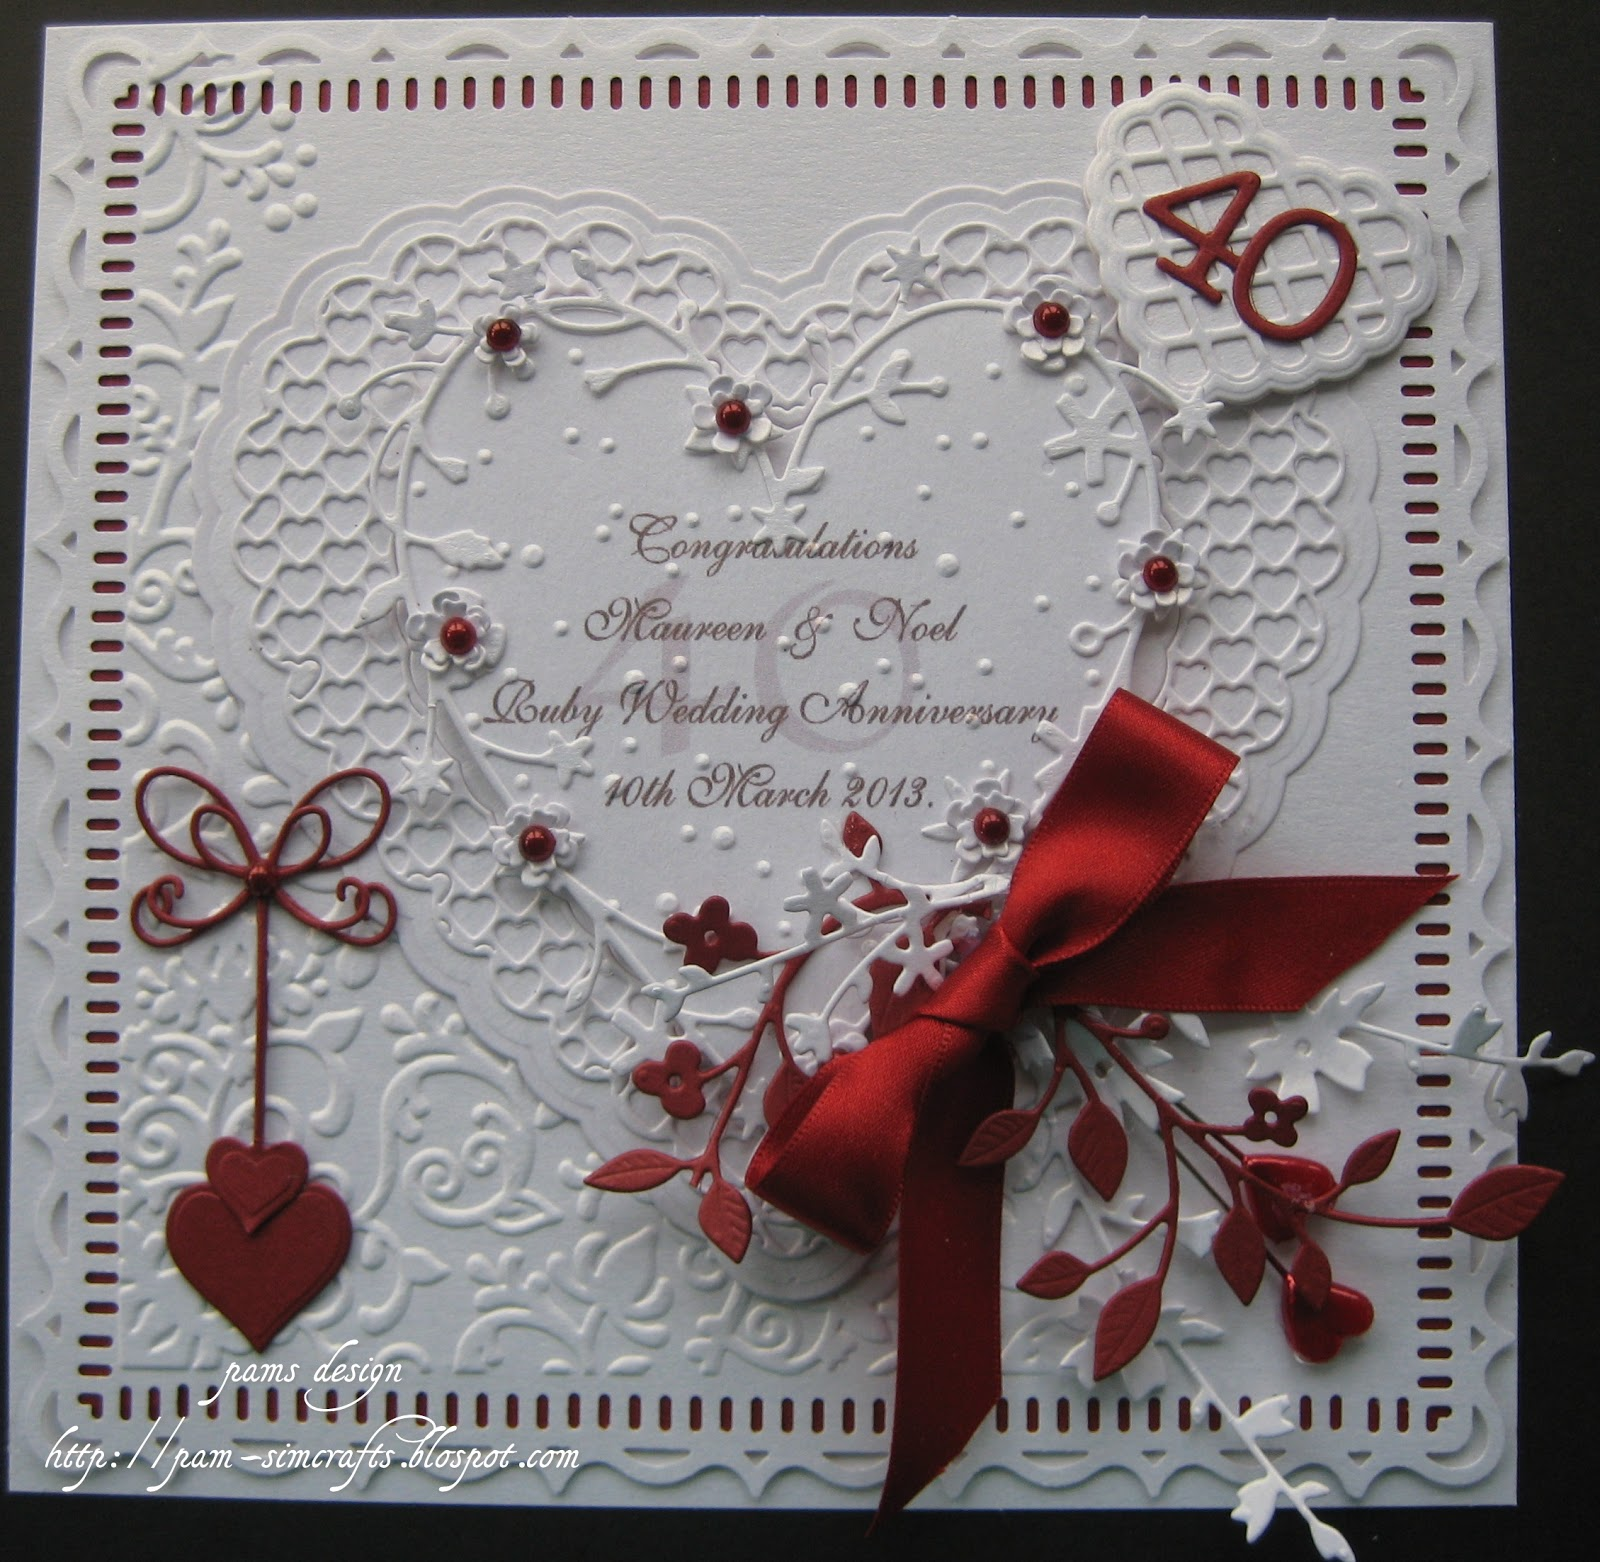 pamscrafts: Ruby Wedding Anniversary